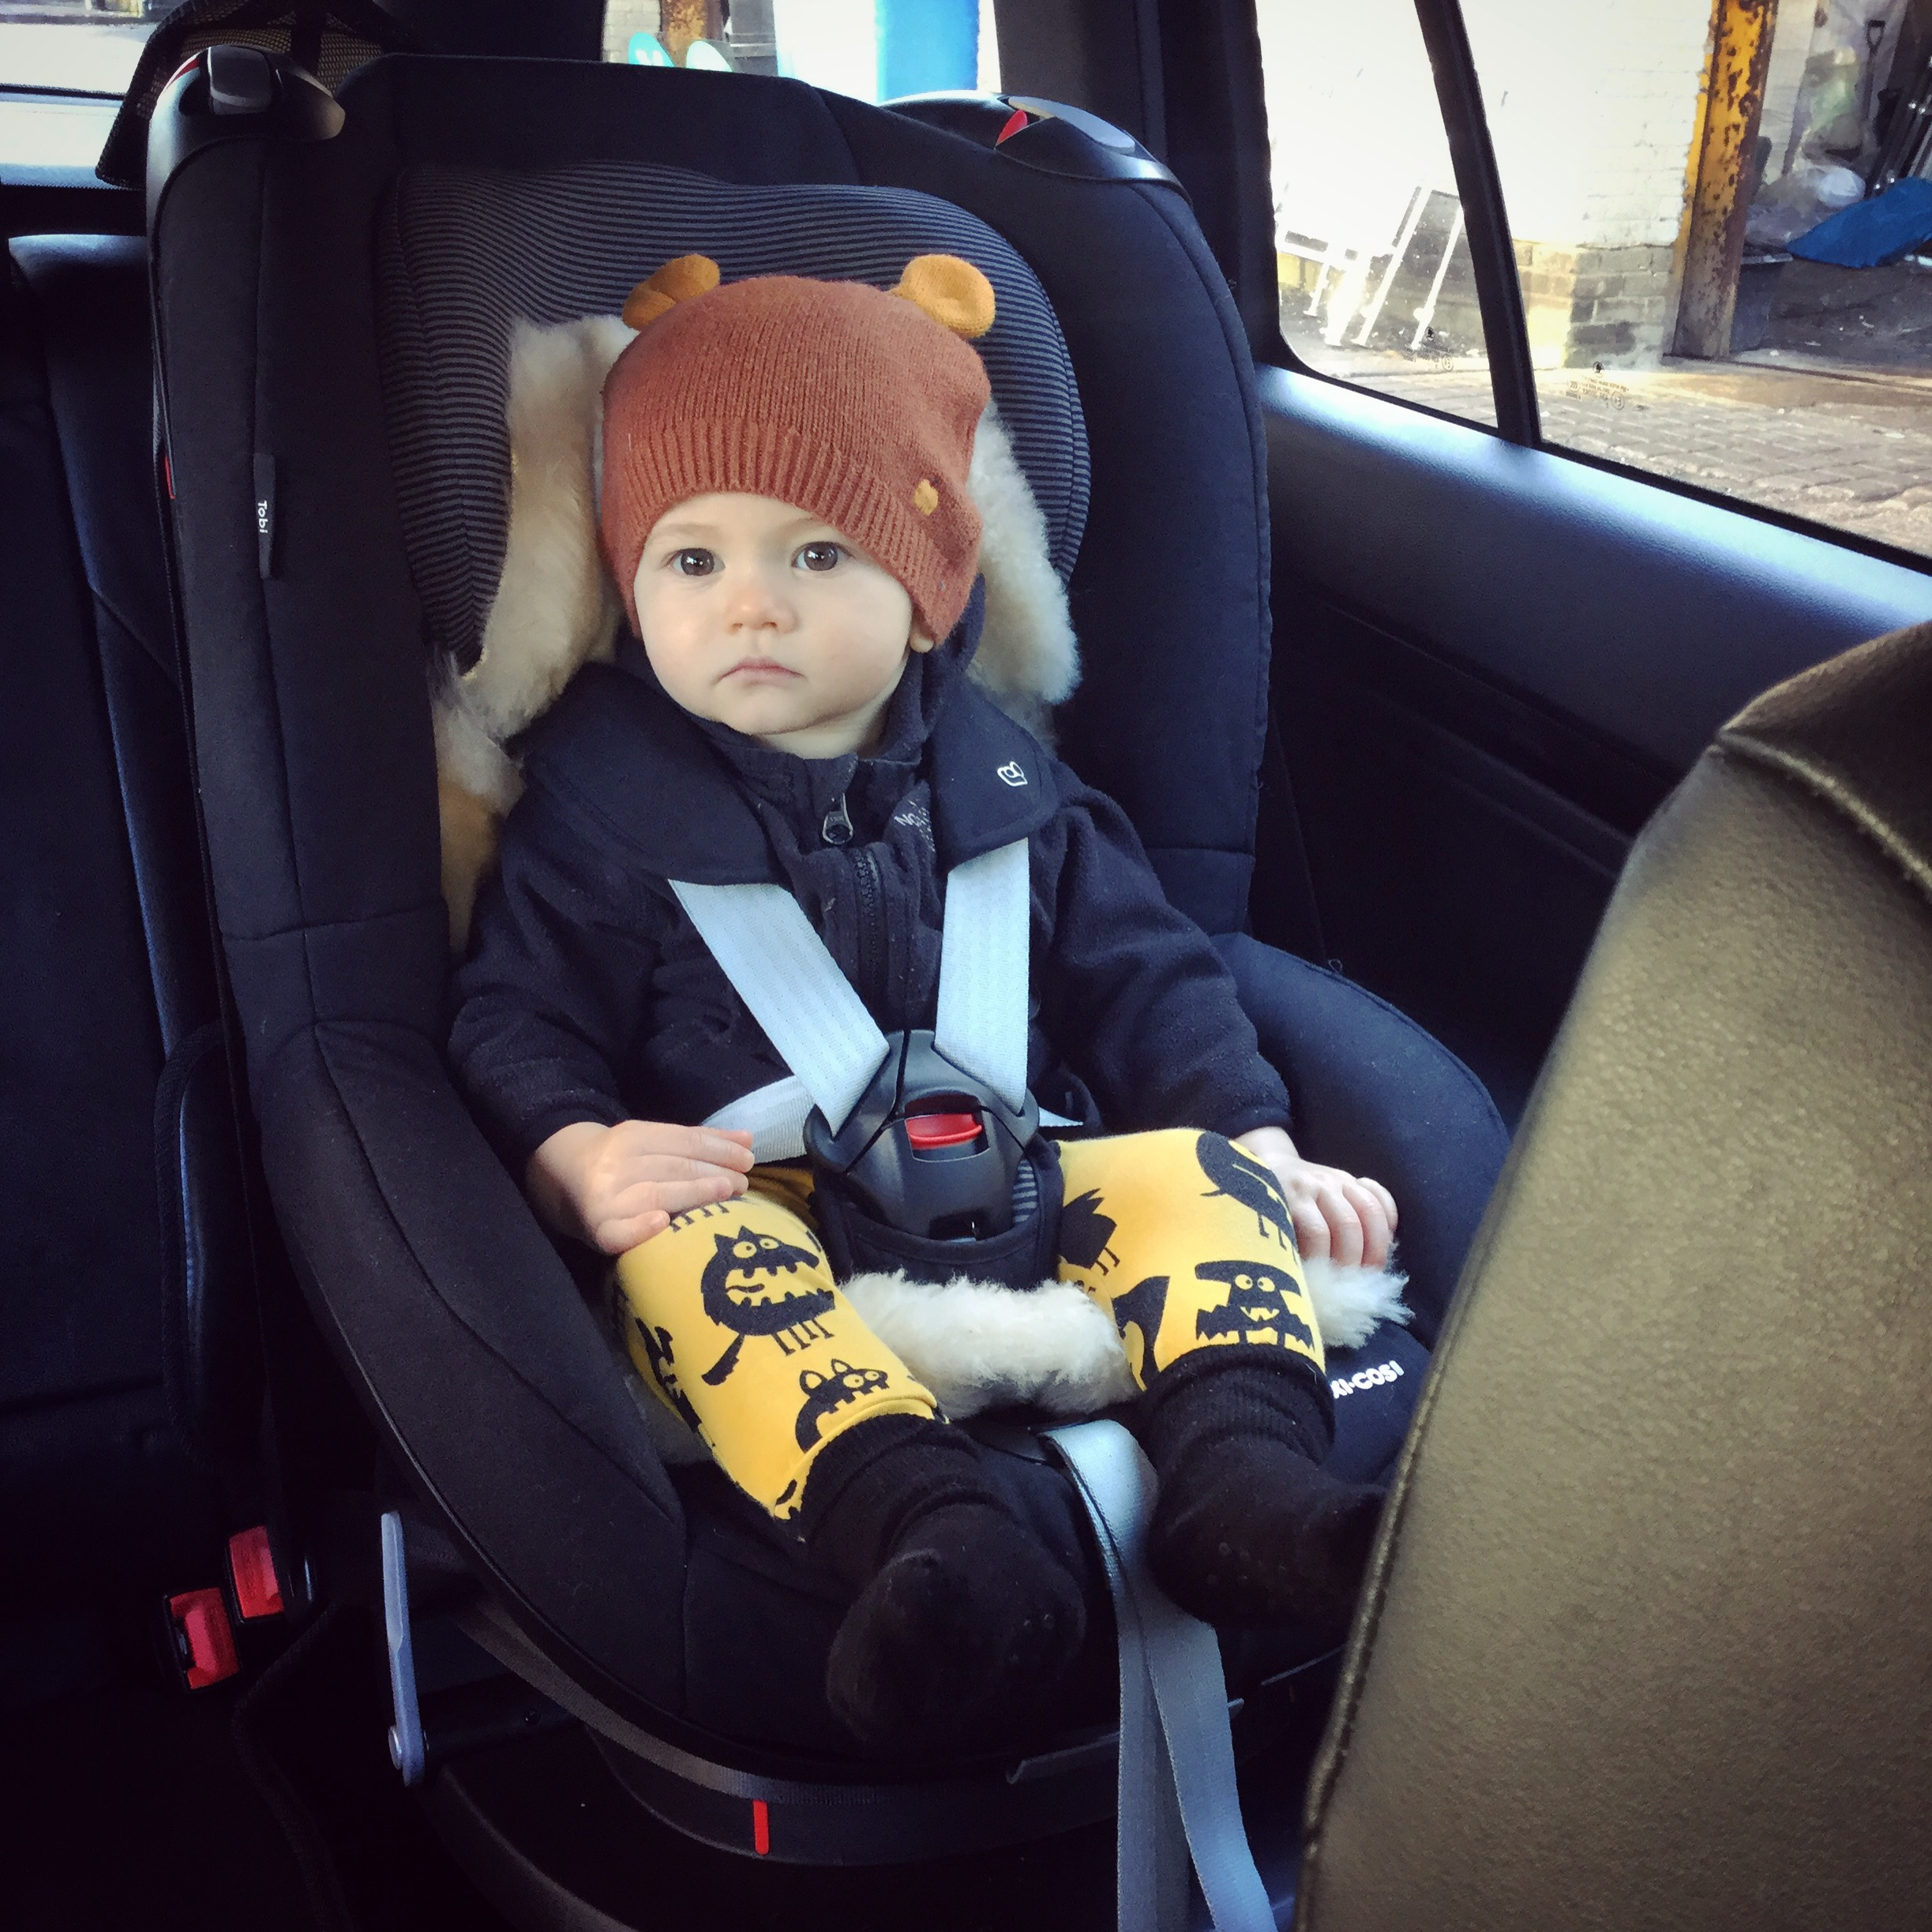 Maxi Cosi Baby Car Seat How To Install Maxi Cosi Tobi Seat Belt Installed Toddler Car Seat